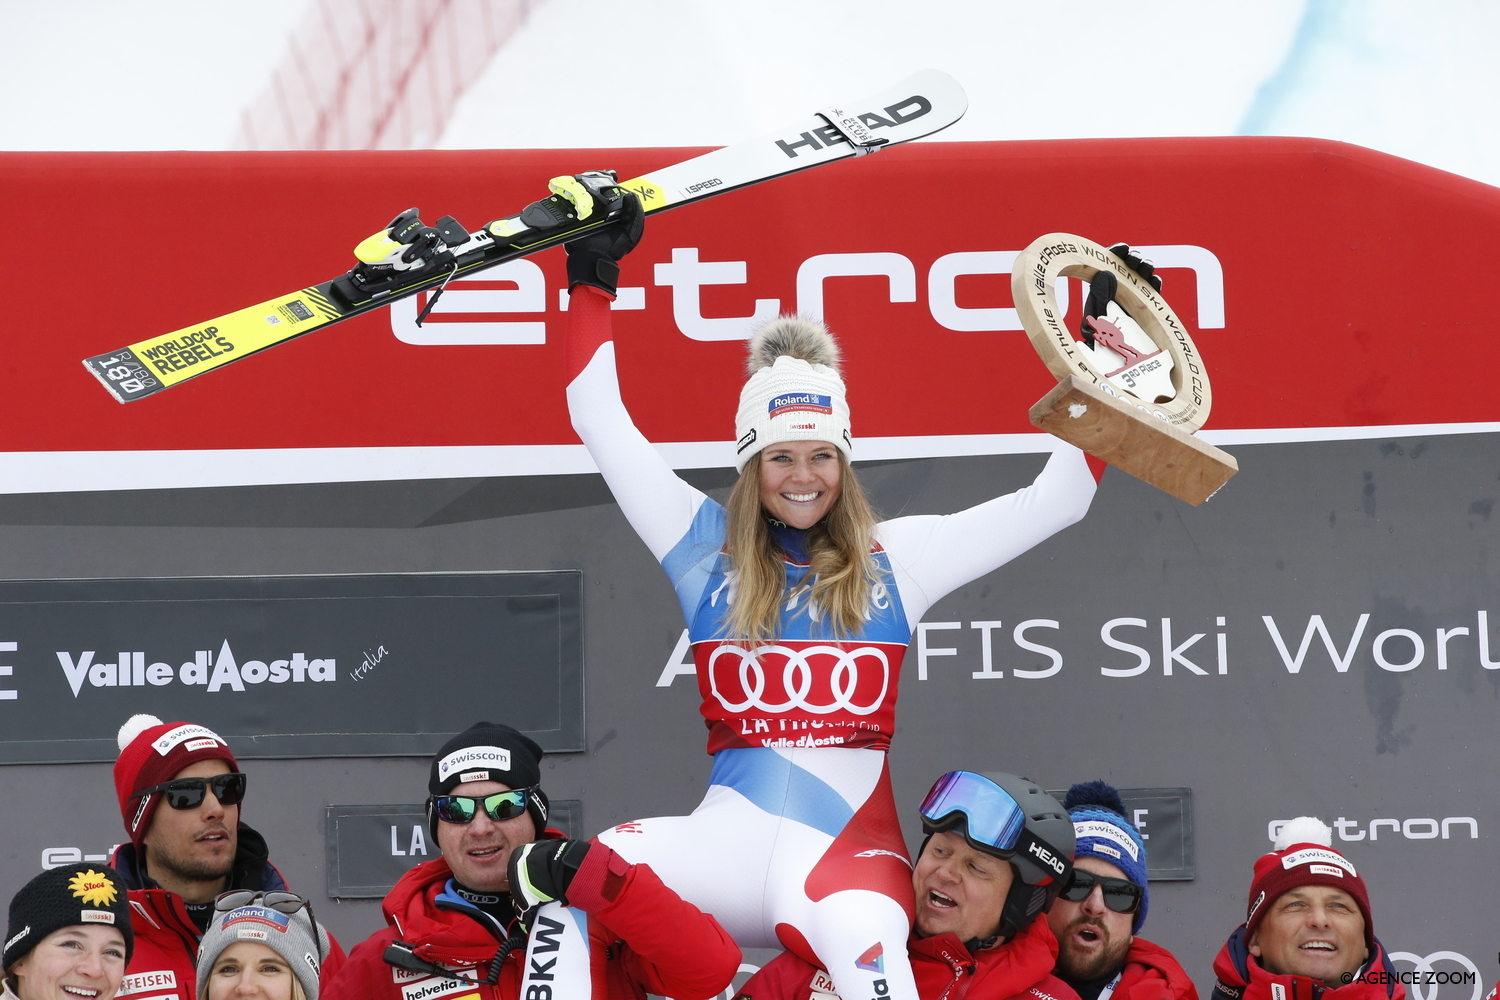 Corinne Suter crowned queen of the speed disciplines